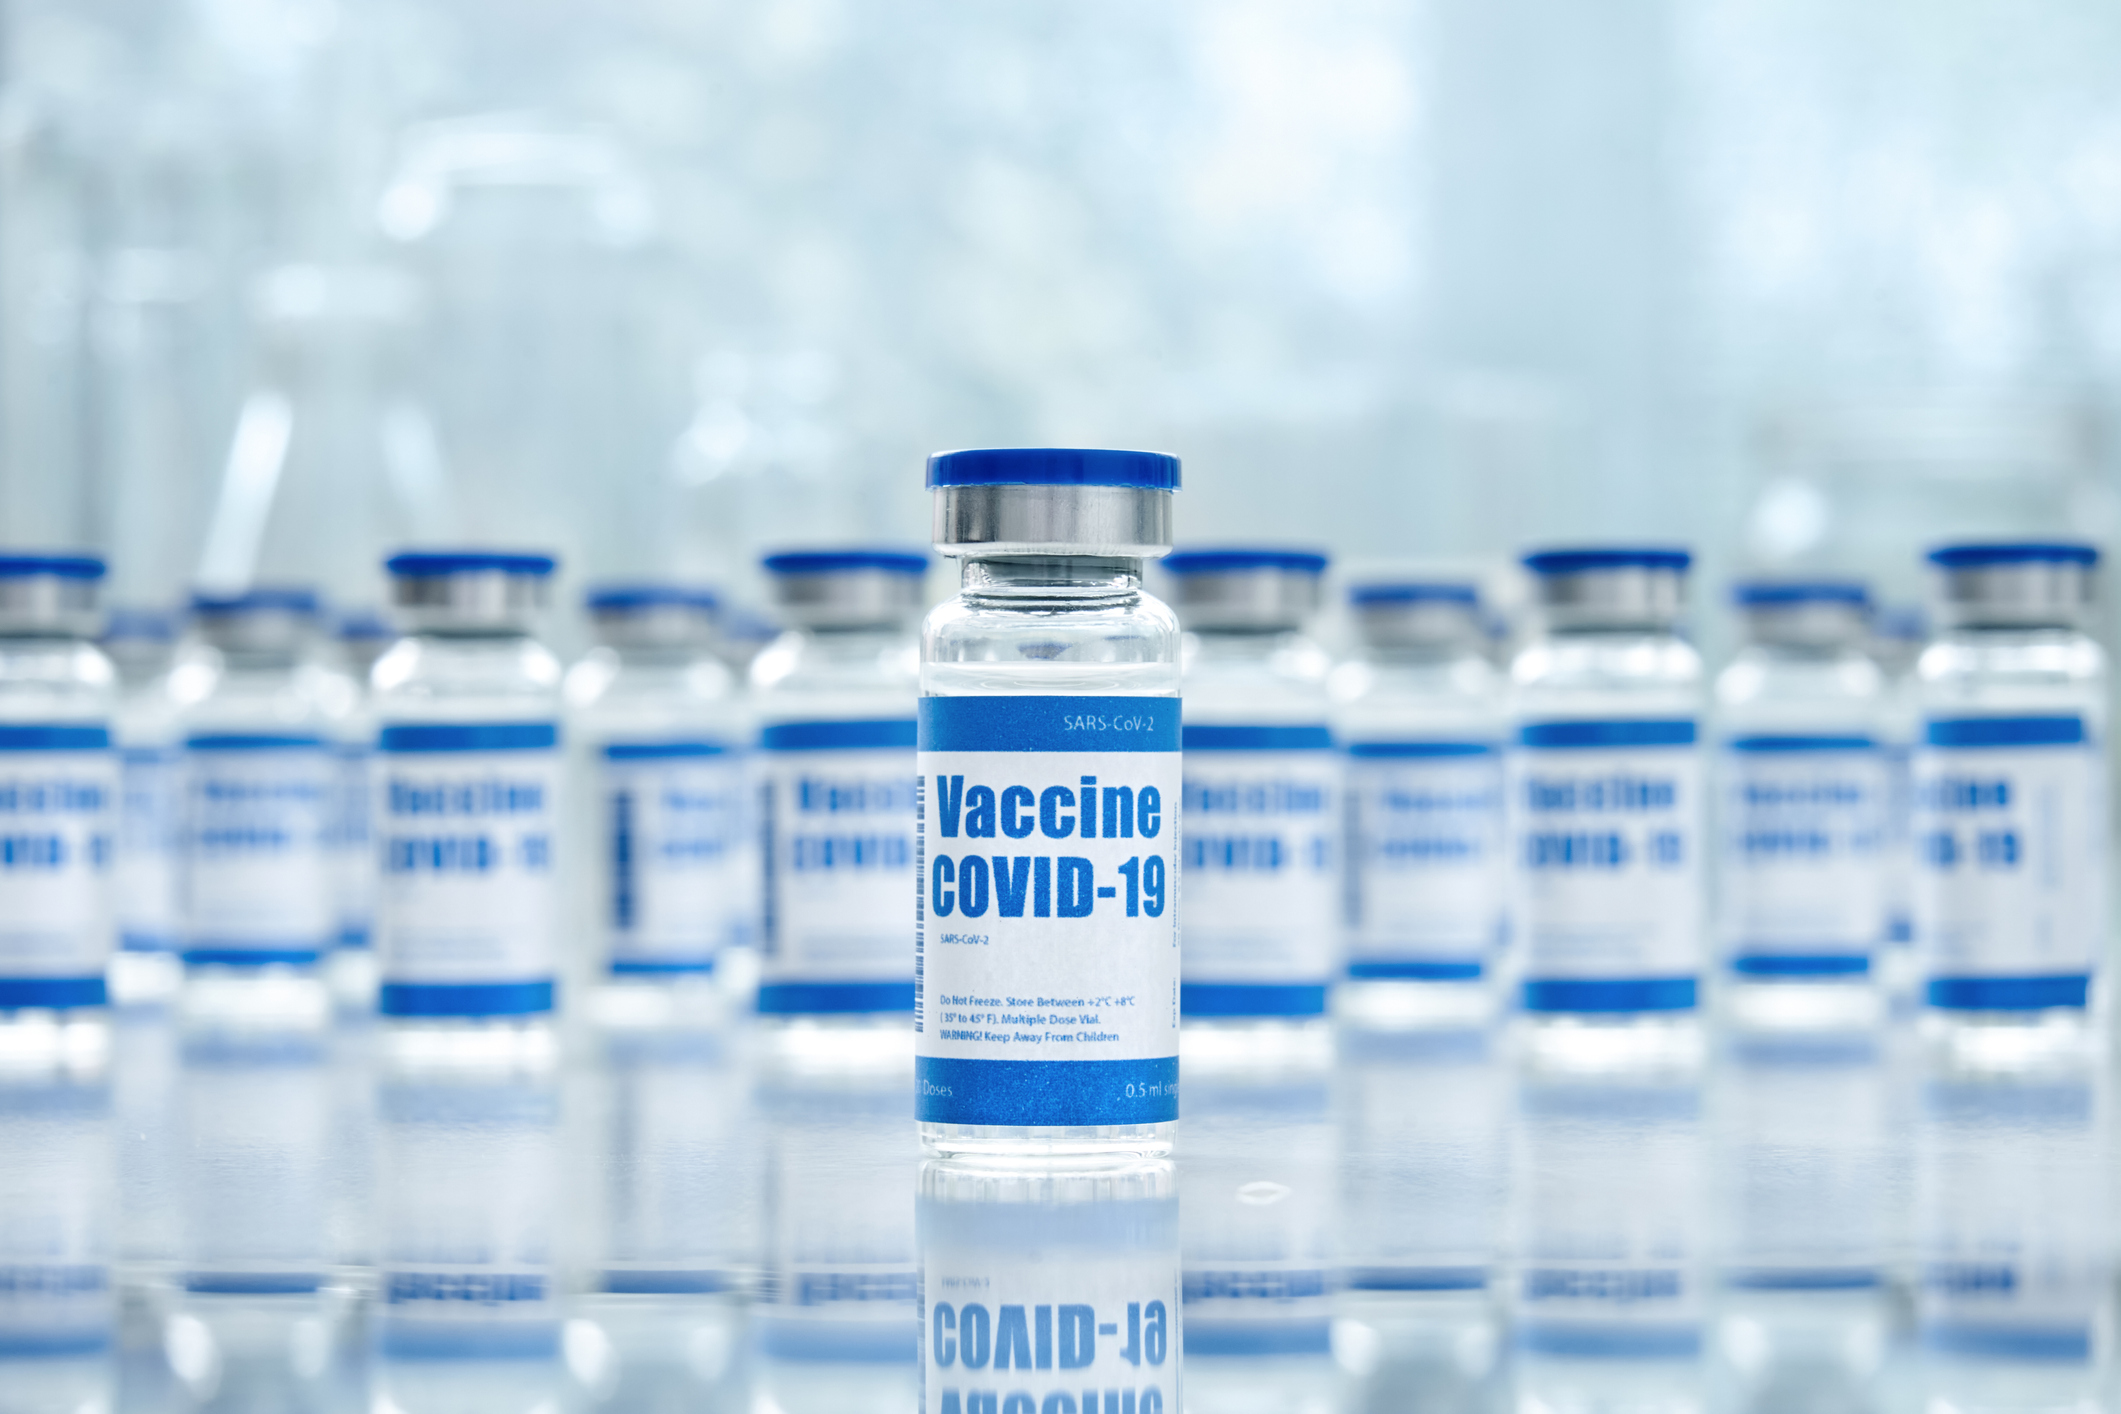 A Christian Consideration of the COVID-19 Vaccines